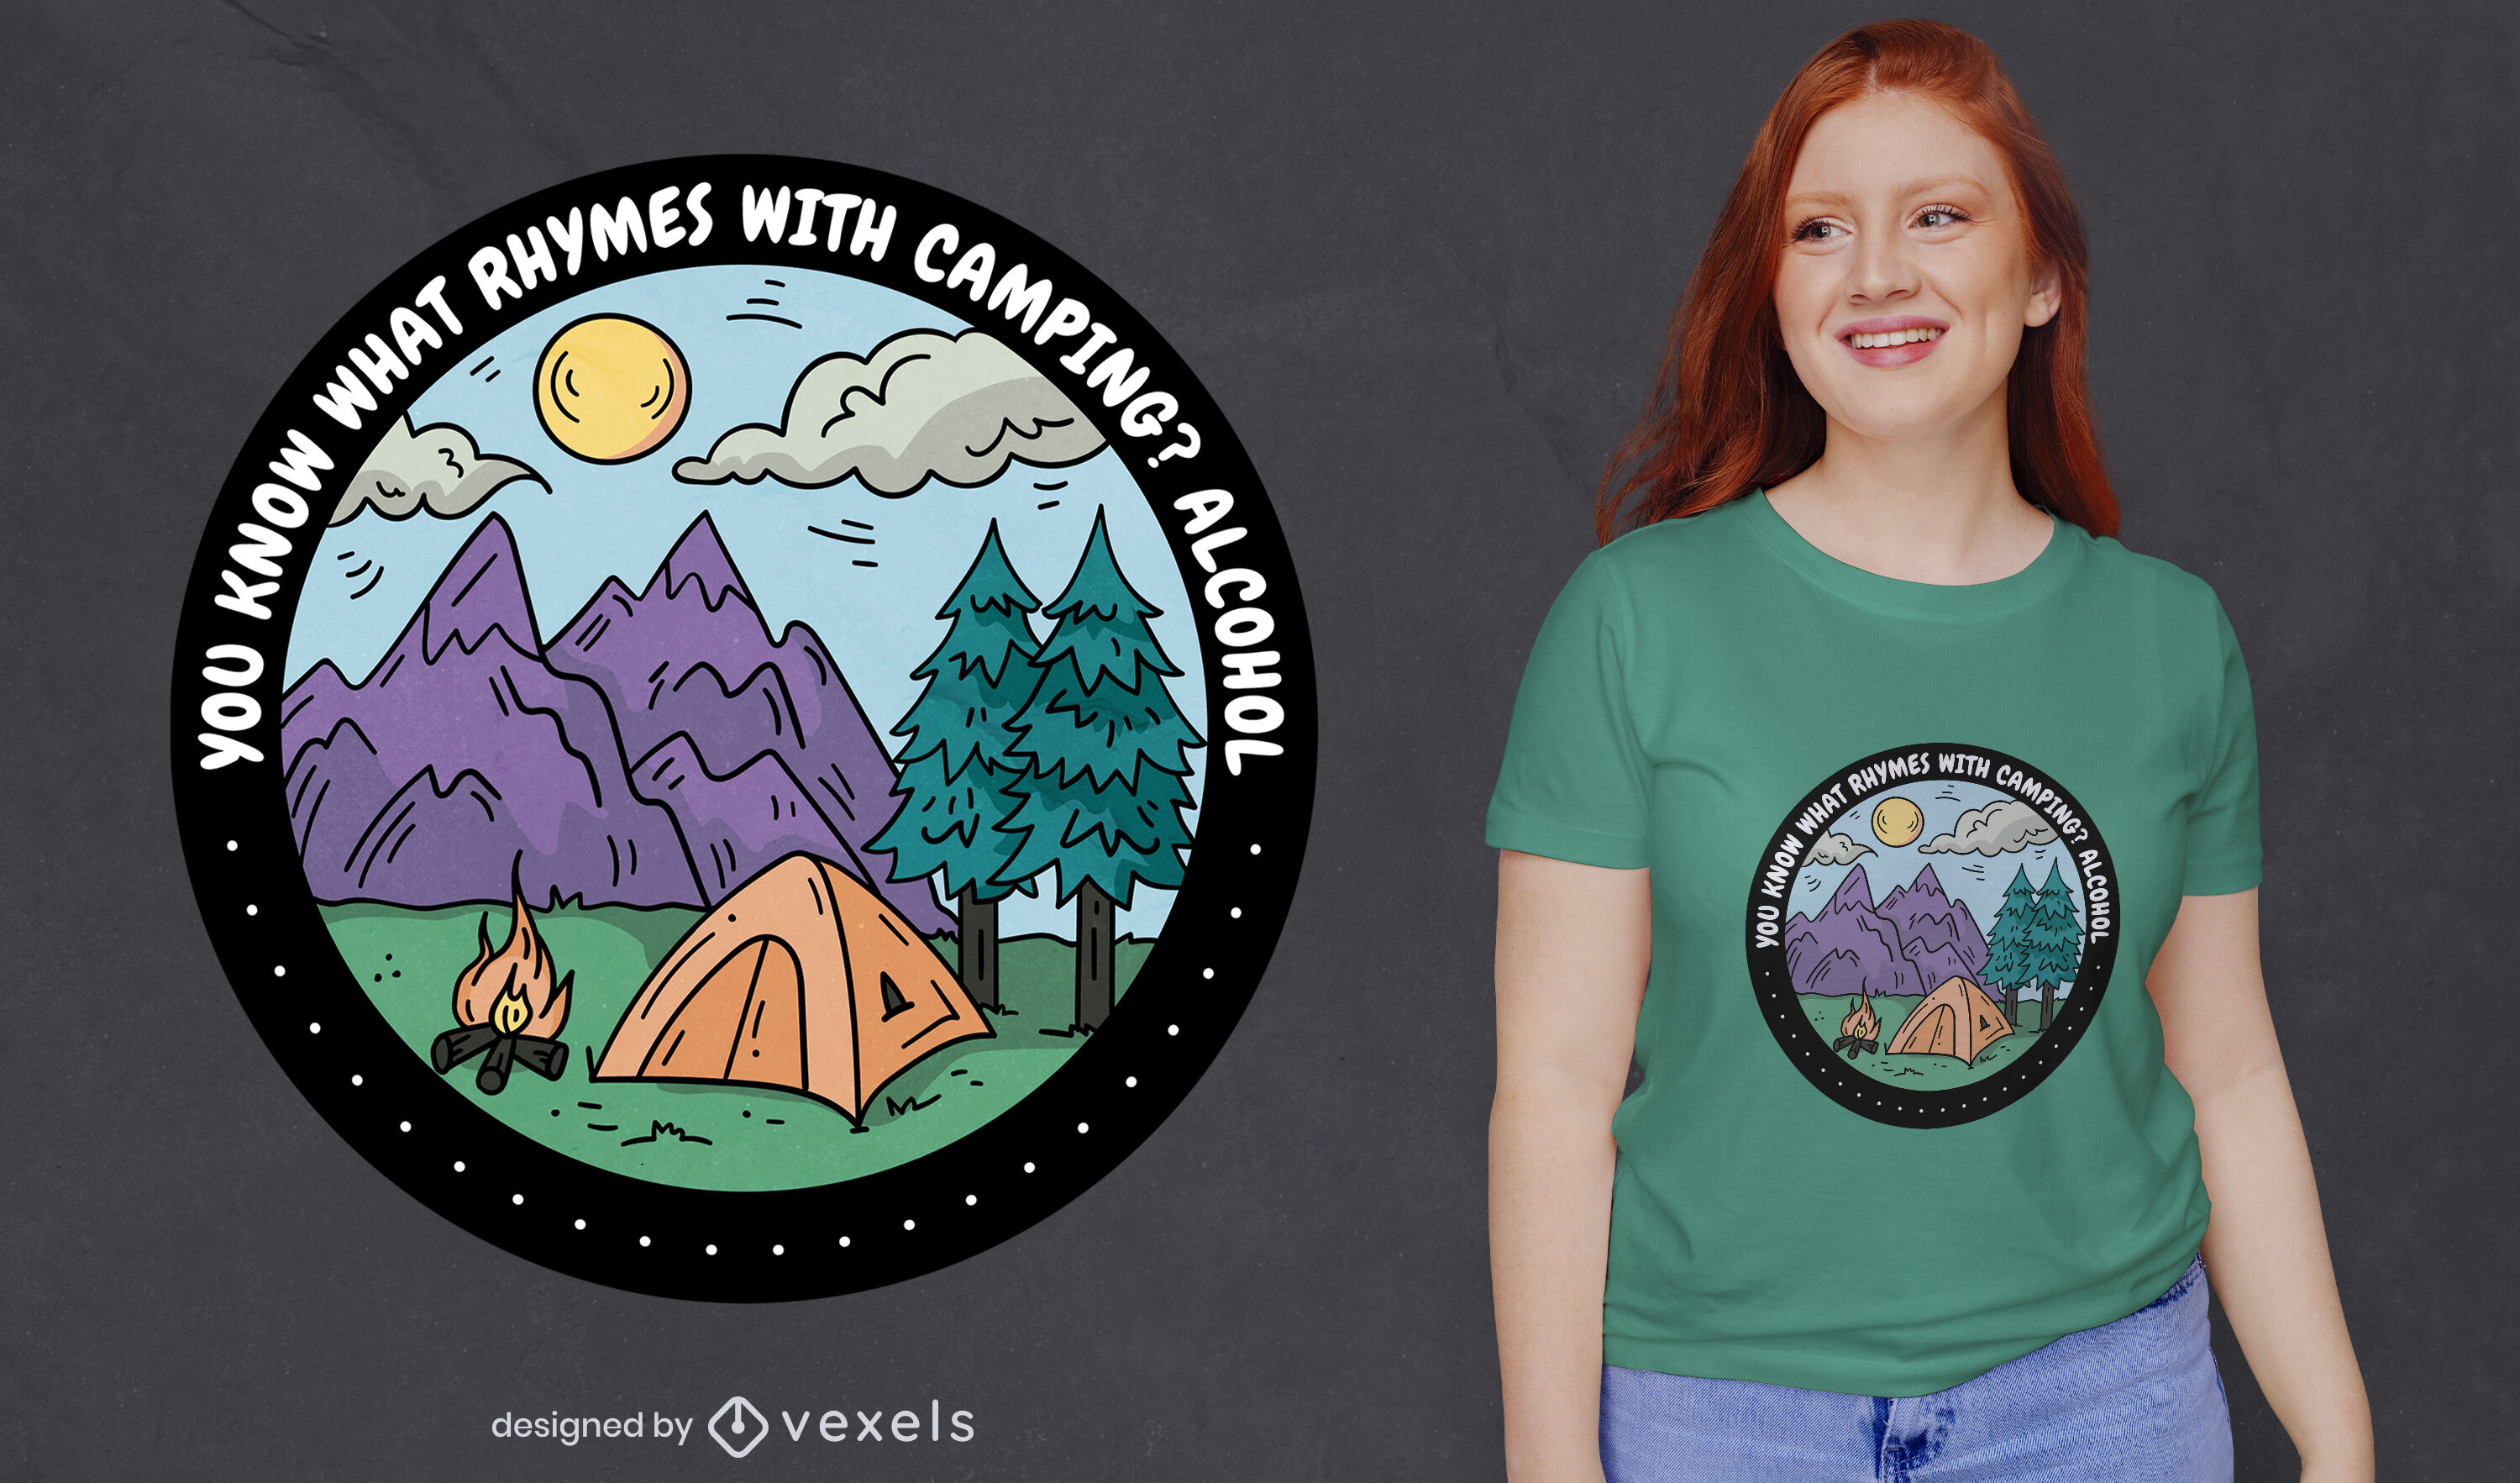 Camping with alcohol badge t-shirt design